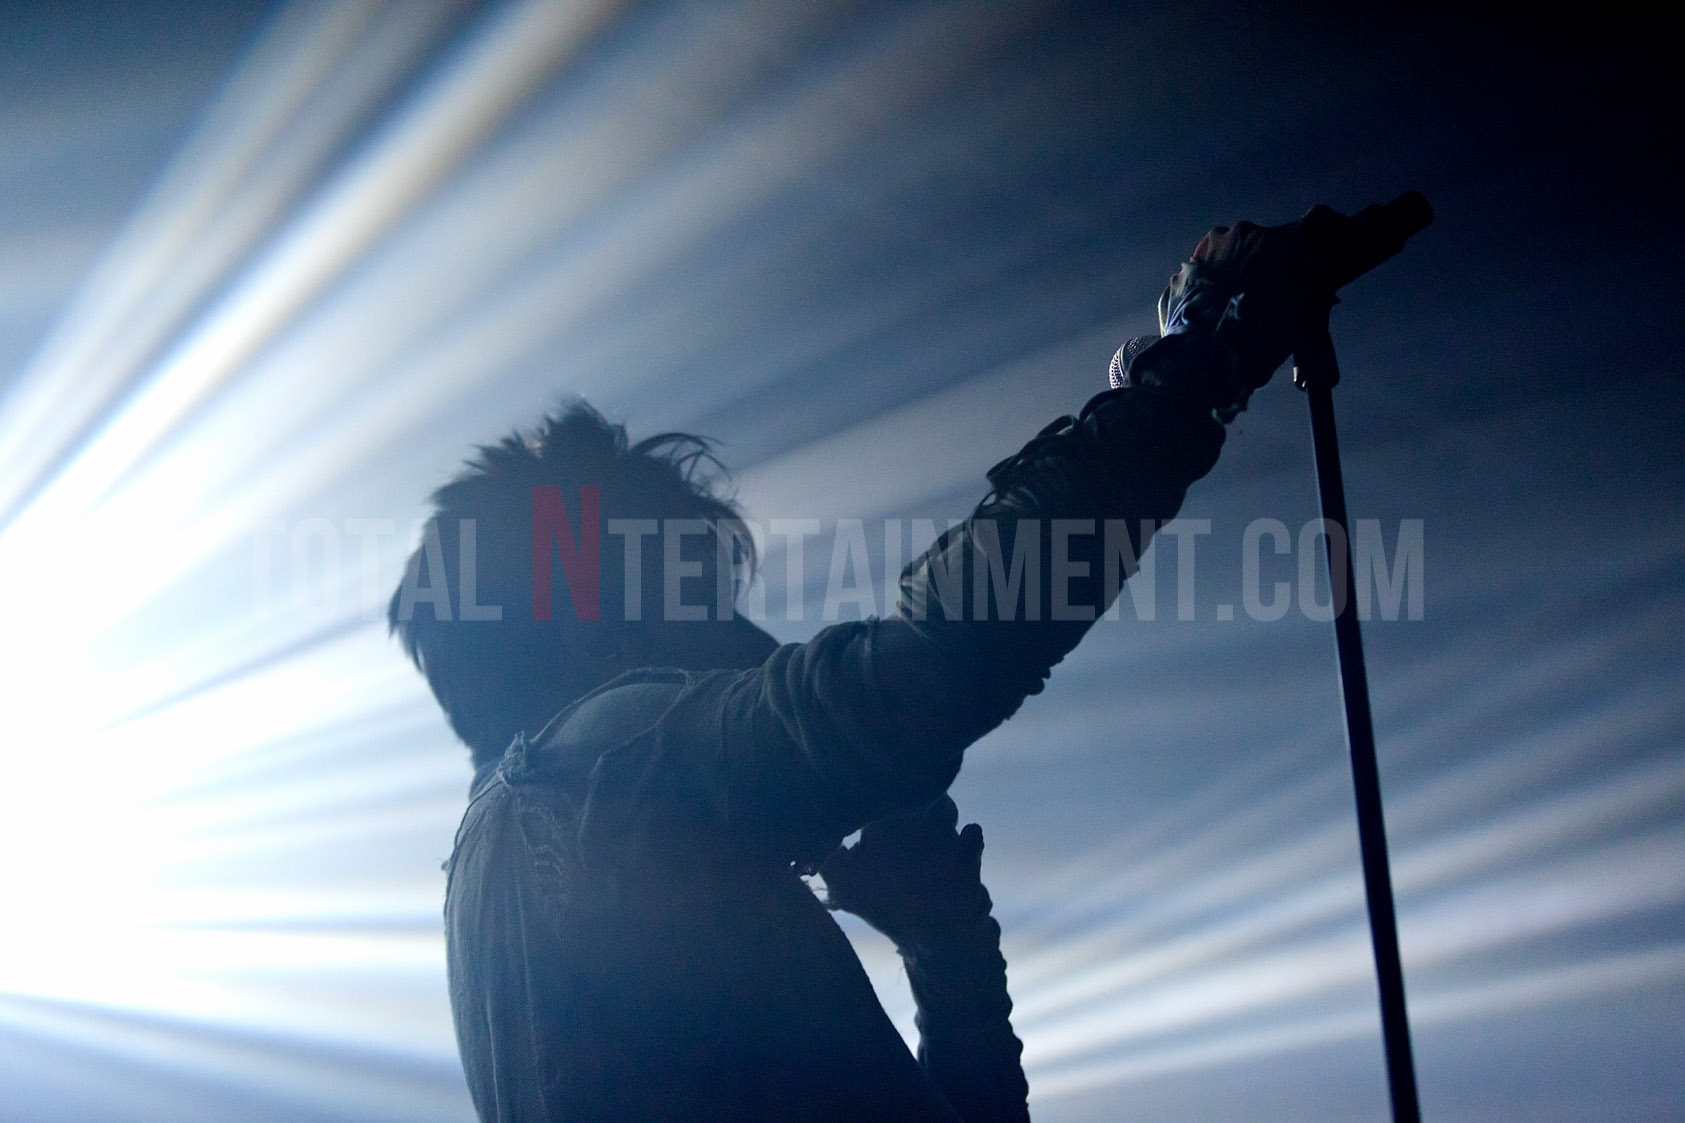 Gary Numan, Savage, Liverpool, Jo Forrest, totalntertainment, music, tour